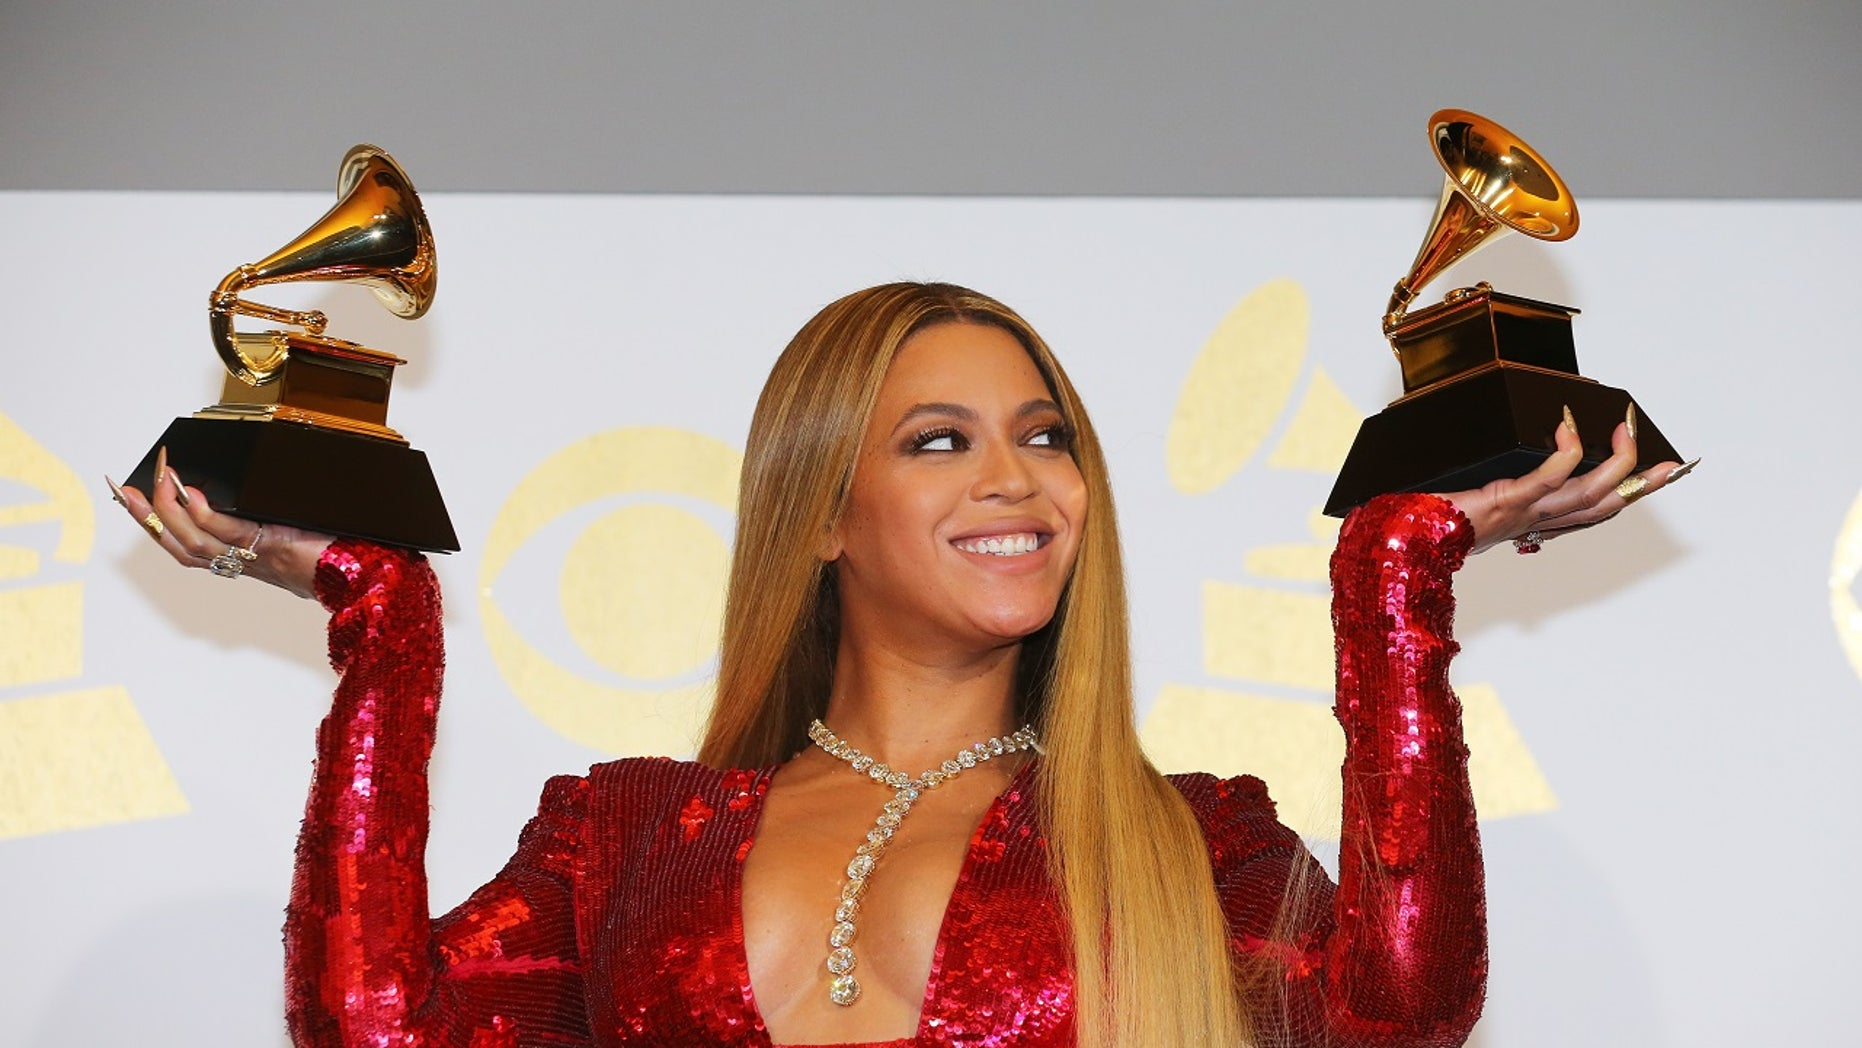 Beyonce Grammys: Top Grammy Winners Of All Time